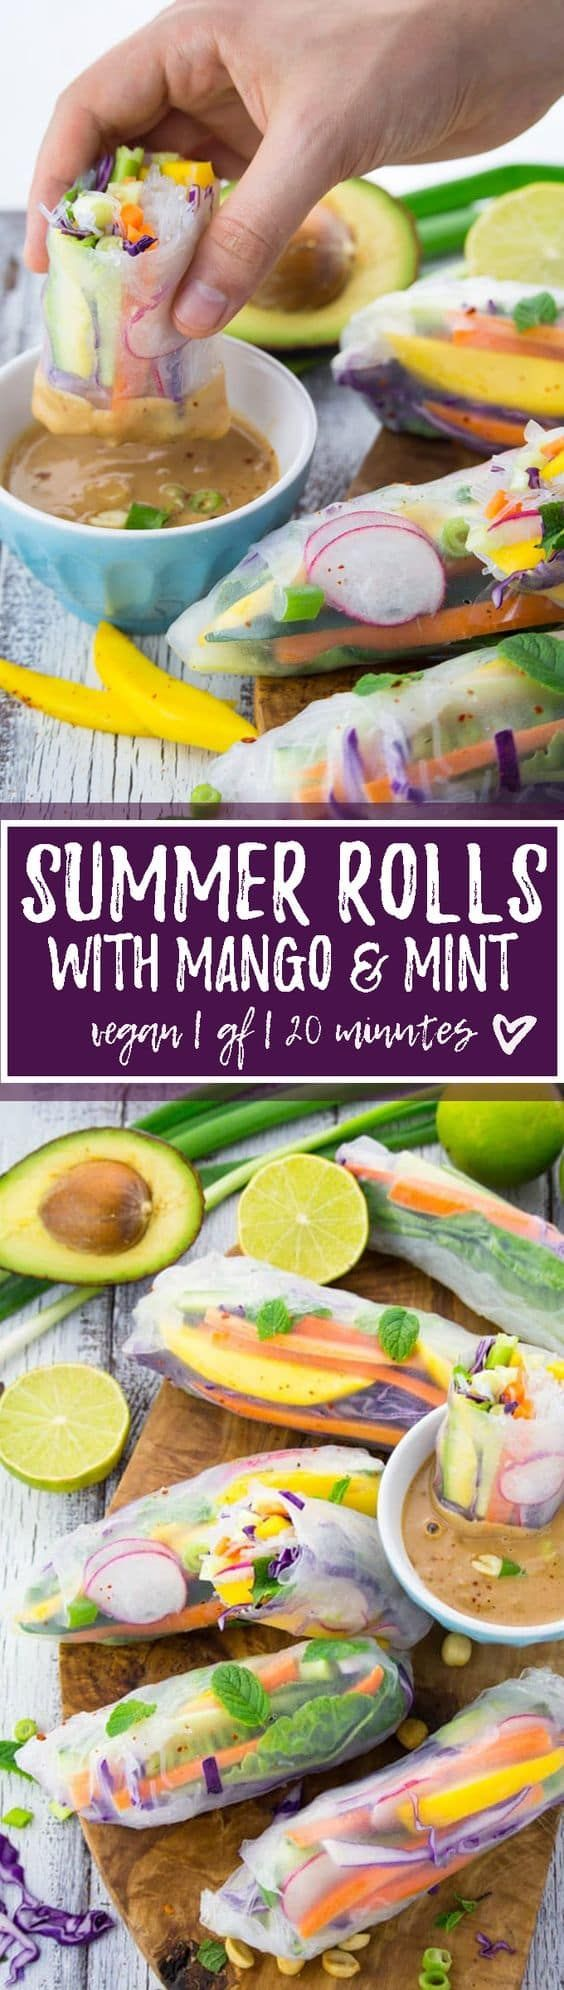 These vegan summer rolls with mango and mint are the perfect light dinner for hot summer days. They're healthy, fresh, low in calories, and super delicious! Oh, how I love healthy vegan recipes like this one!